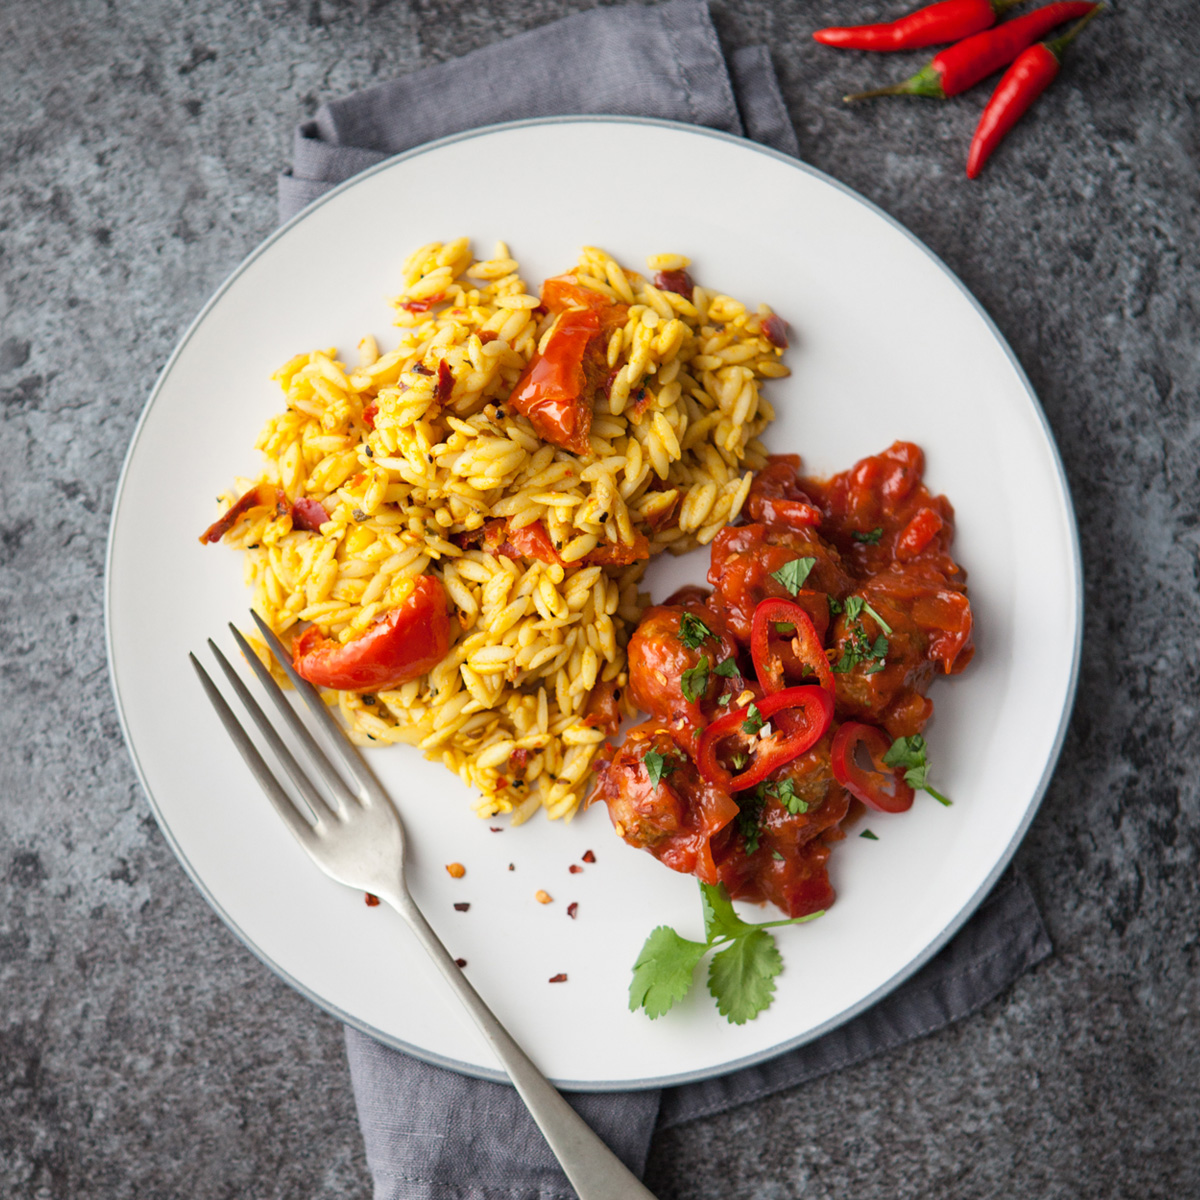 Spicy Meatballs with Orzo